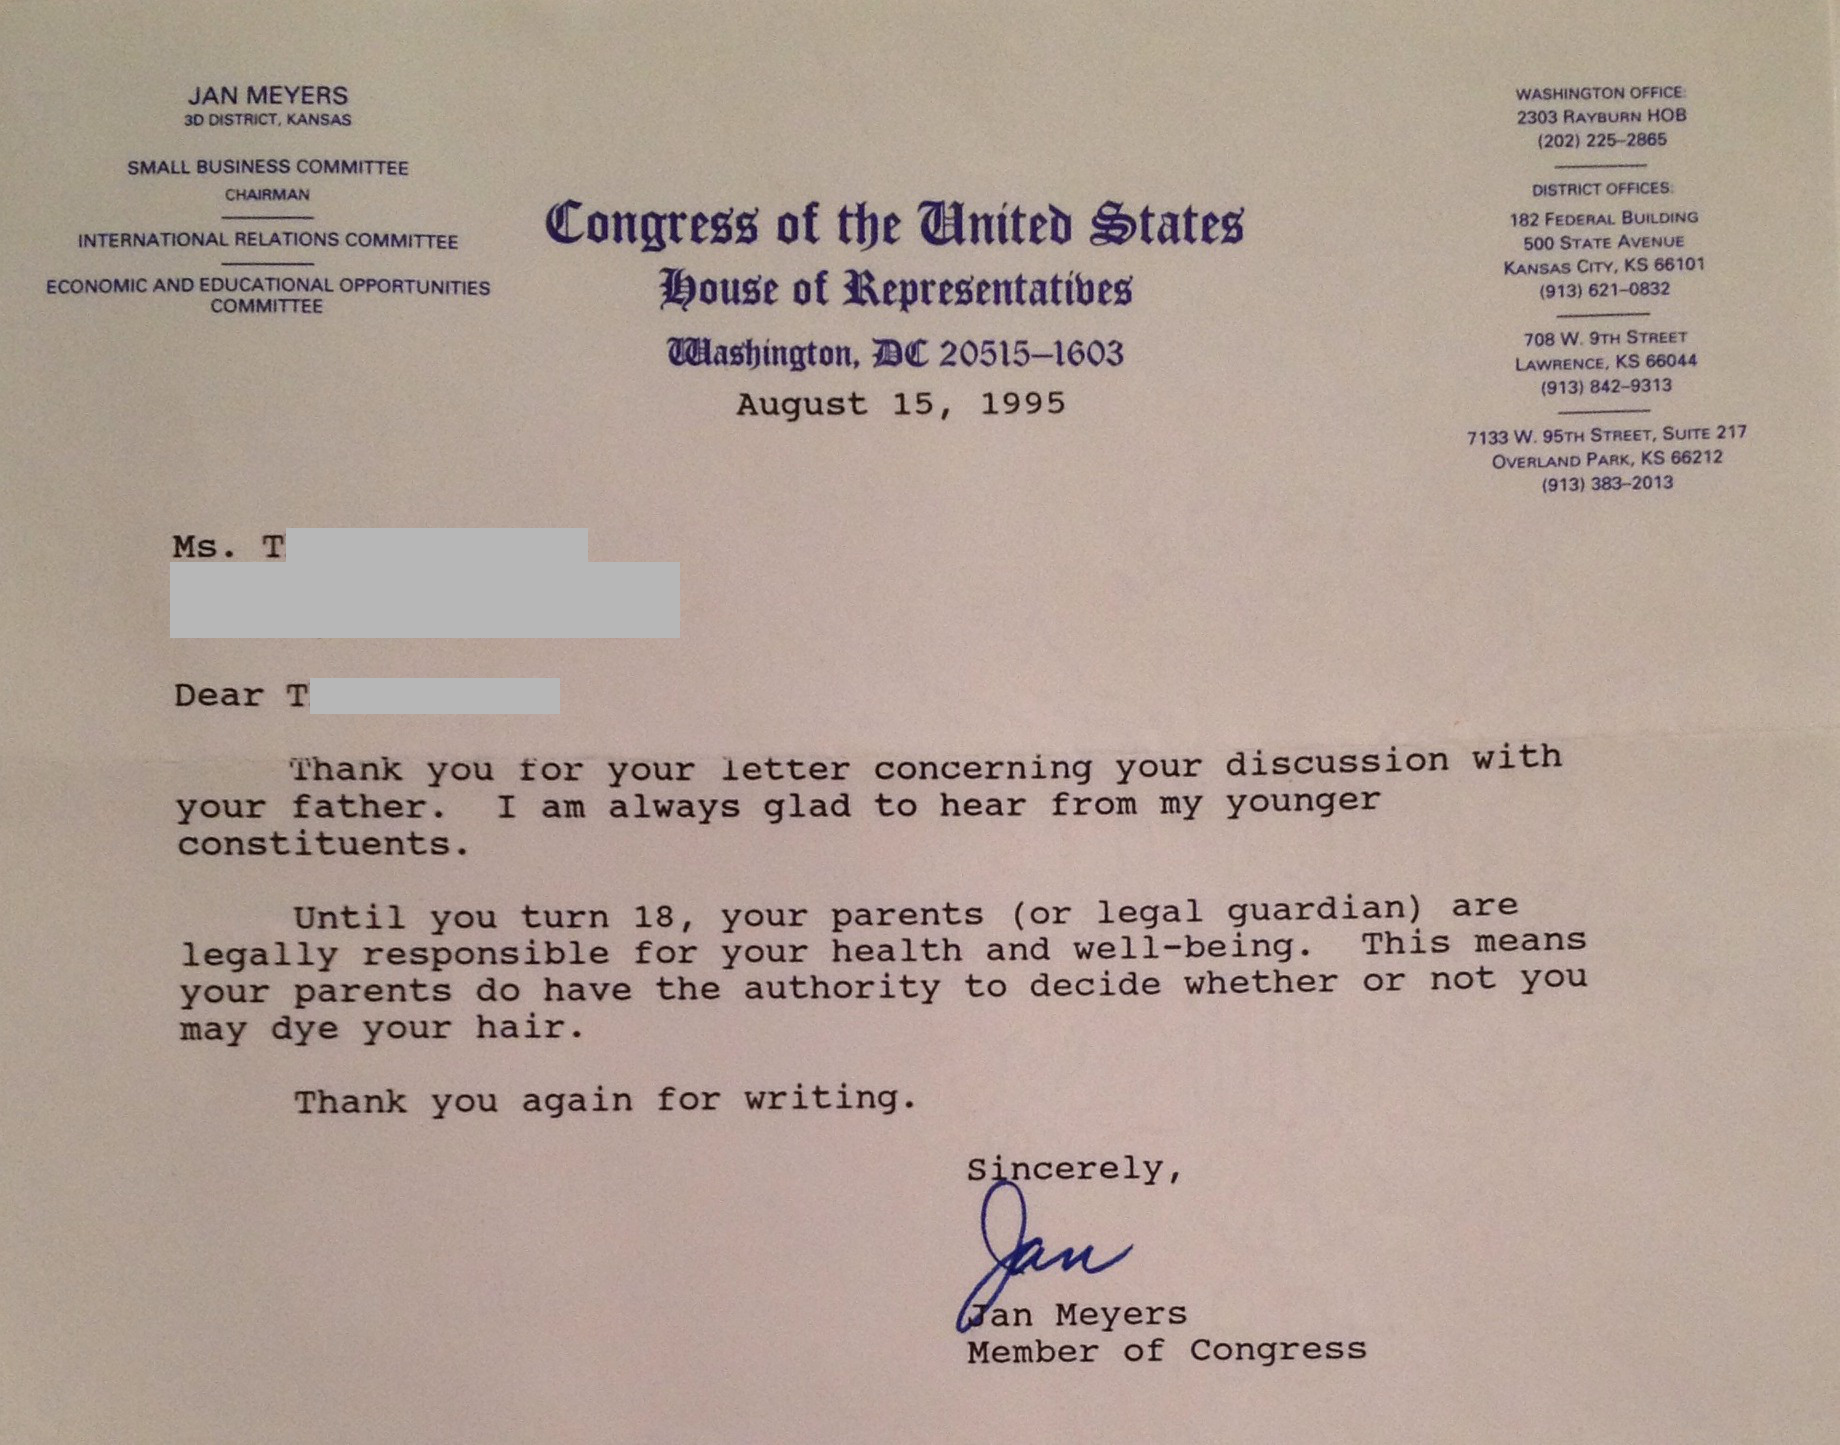 20 years ago, a girl wrote to Congress to complain about her parents and got this in return.